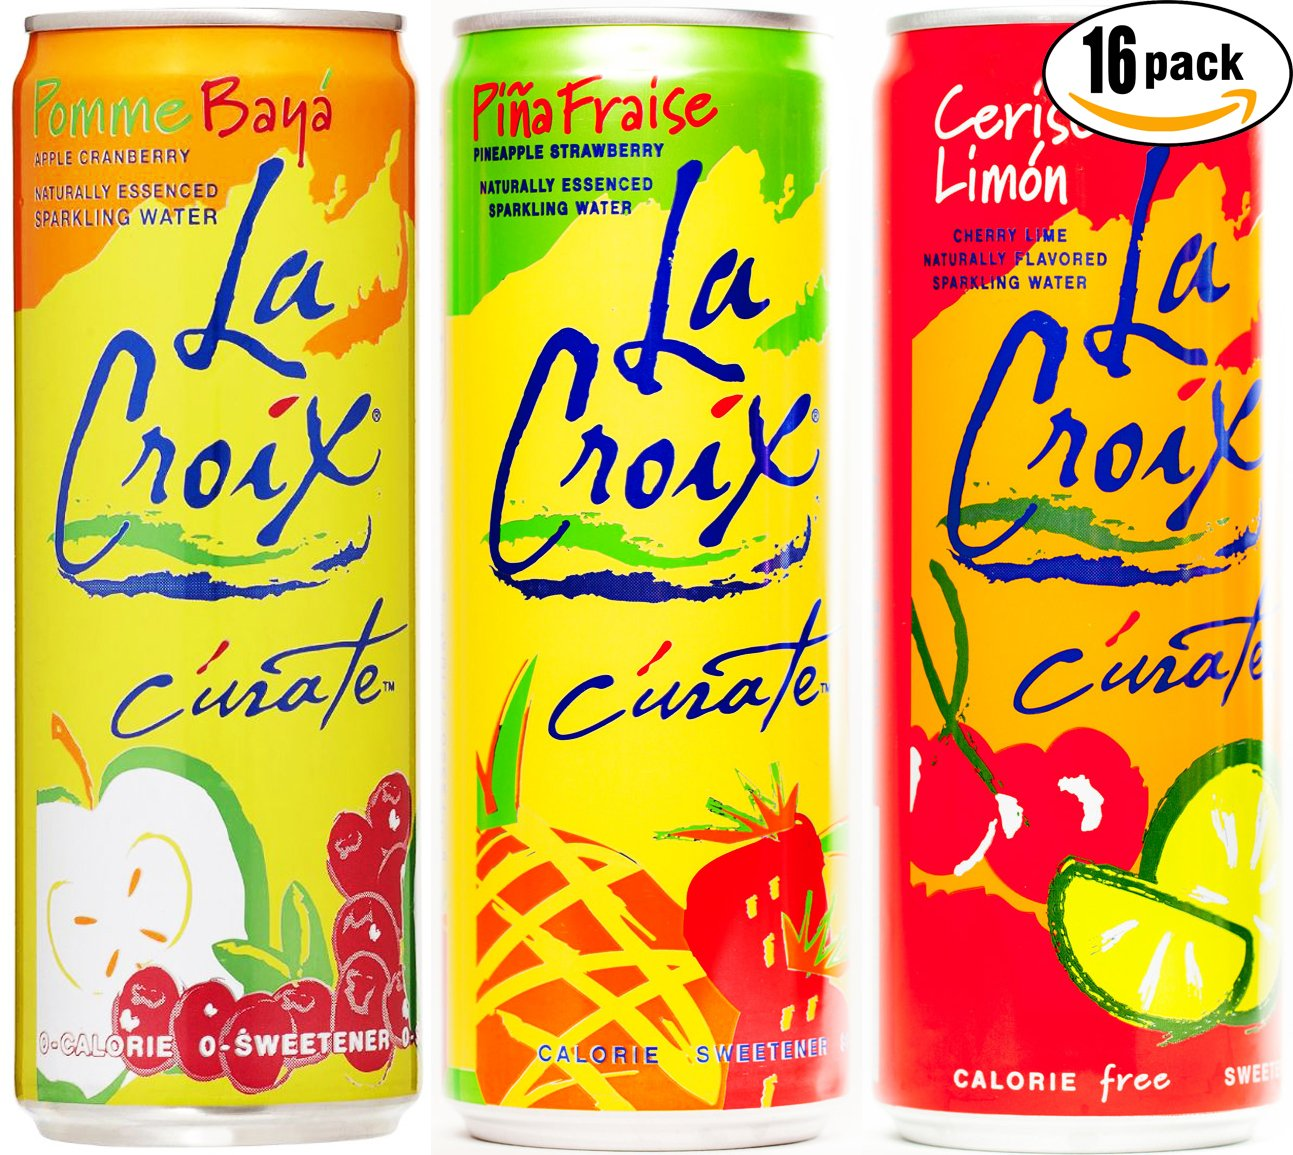 La Croix C'urate Variety Pack! Cherry Lime, Apple Cranberry, Pineapple Strawberry Curate, 12 OZ Cans (3 Flavor Variety Pack, Total of 16 Cans)